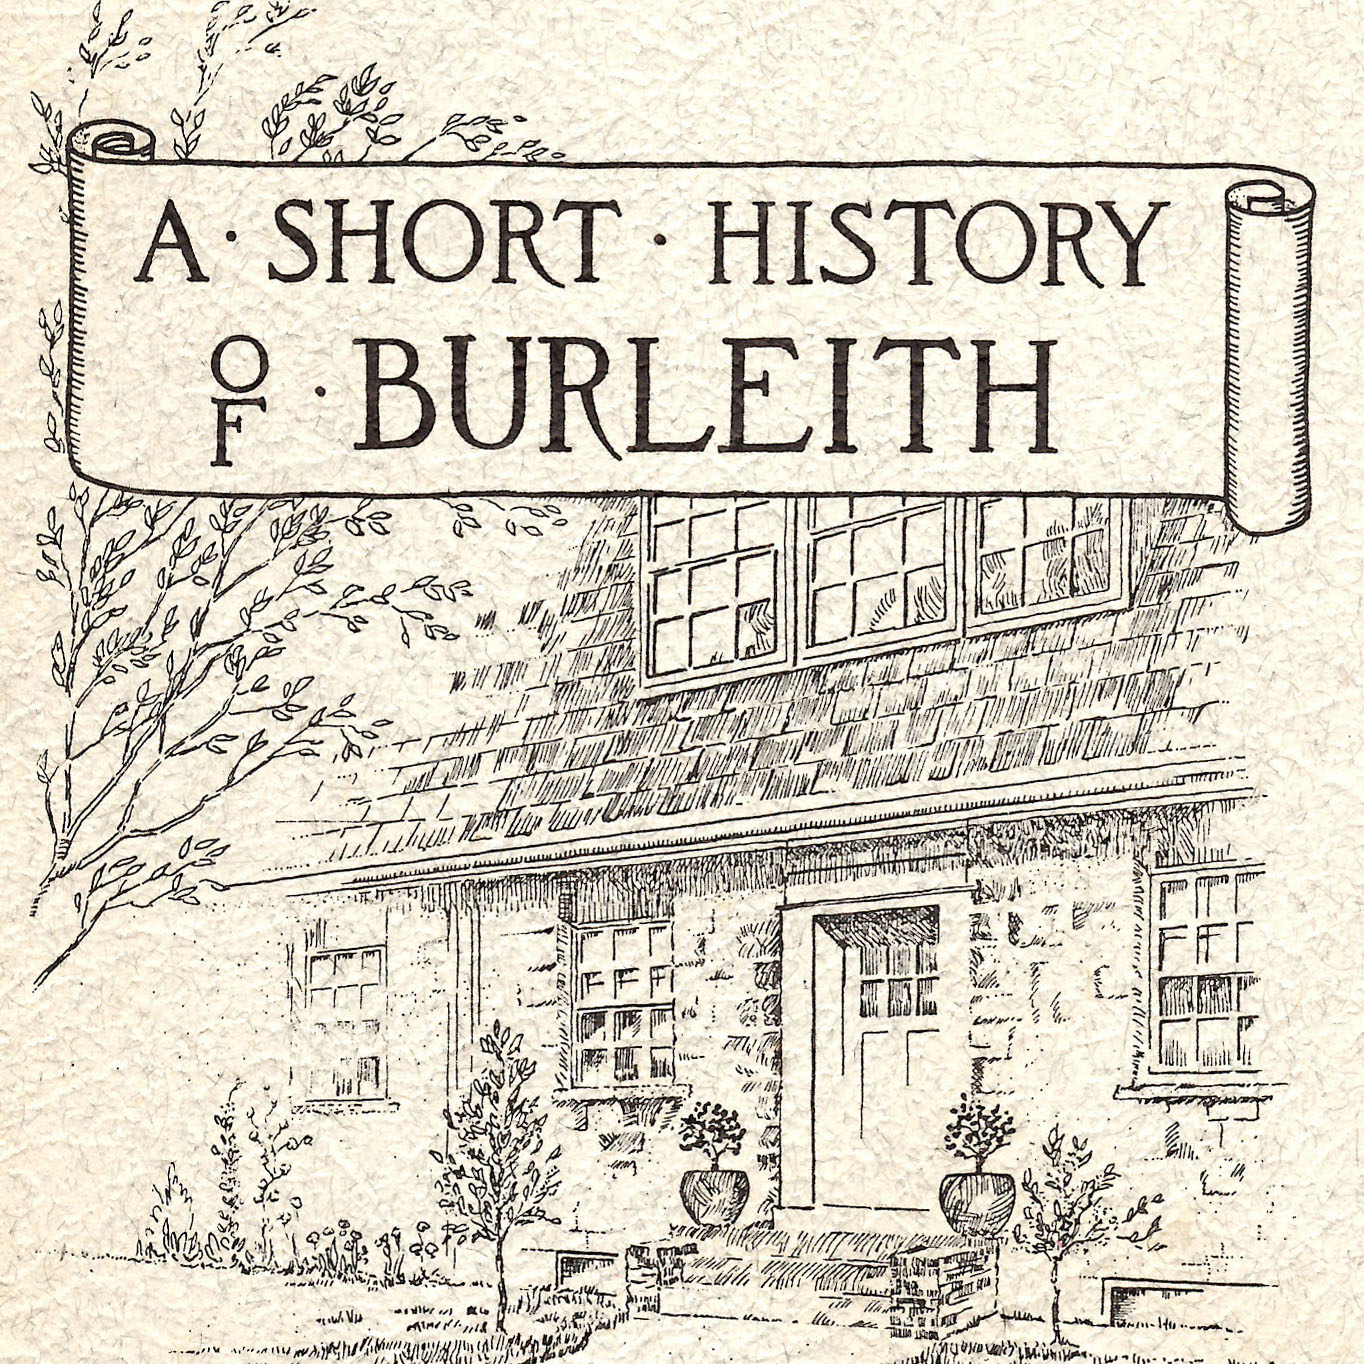 a PDF of this 1955 booklet by edgar FARR russell can be downloaded from our  website .